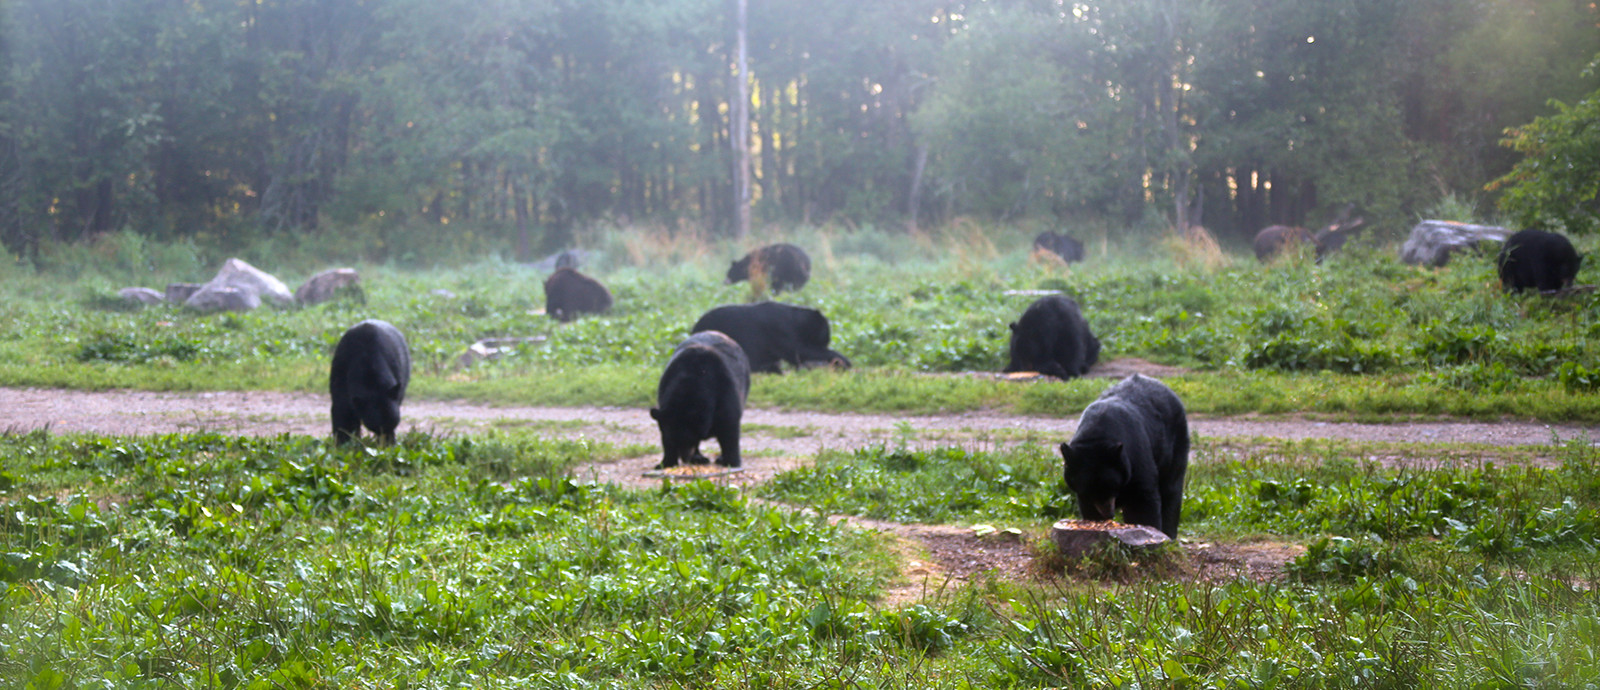 Bears Eating